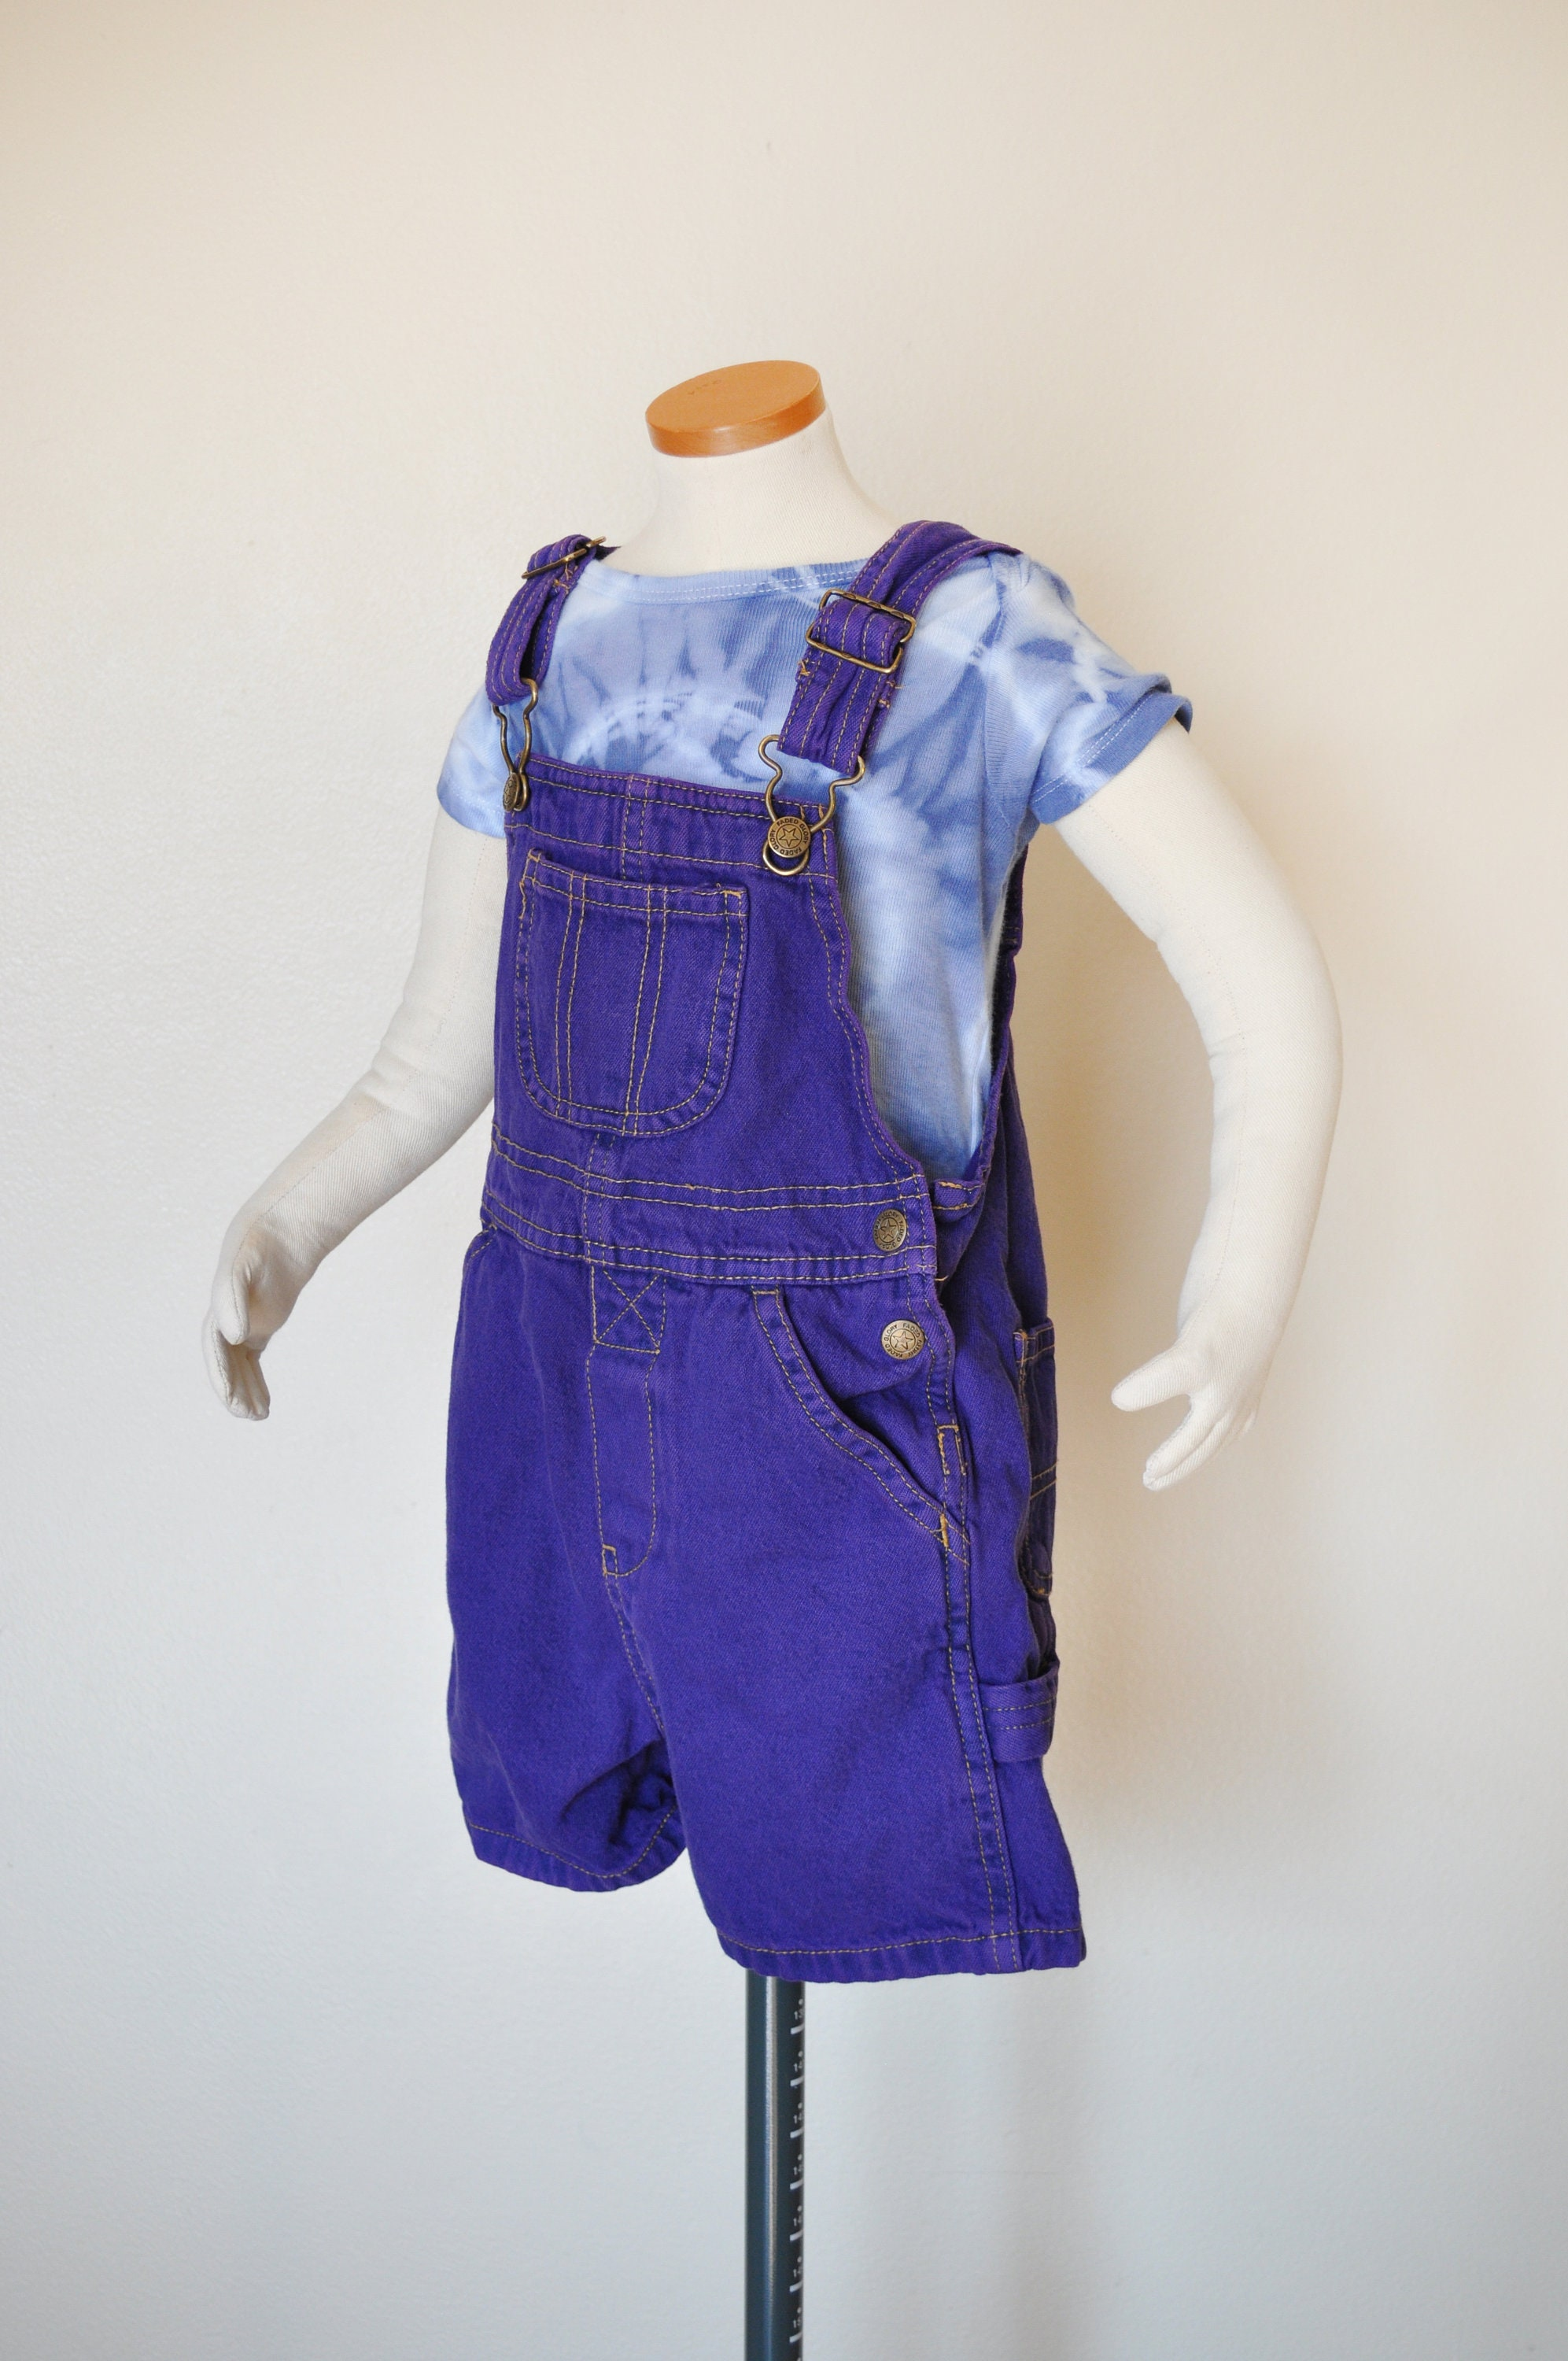 Vintage Overalls & Jumpsuits Purple Kids 3T Bib Overall Shorts - Hand Dyed Violet Upcycled Faded Glory Baby Denim Shortfalls Child Toddler Size 3 Year  24 W X 3 L $30.00 AT vintagedancer.com